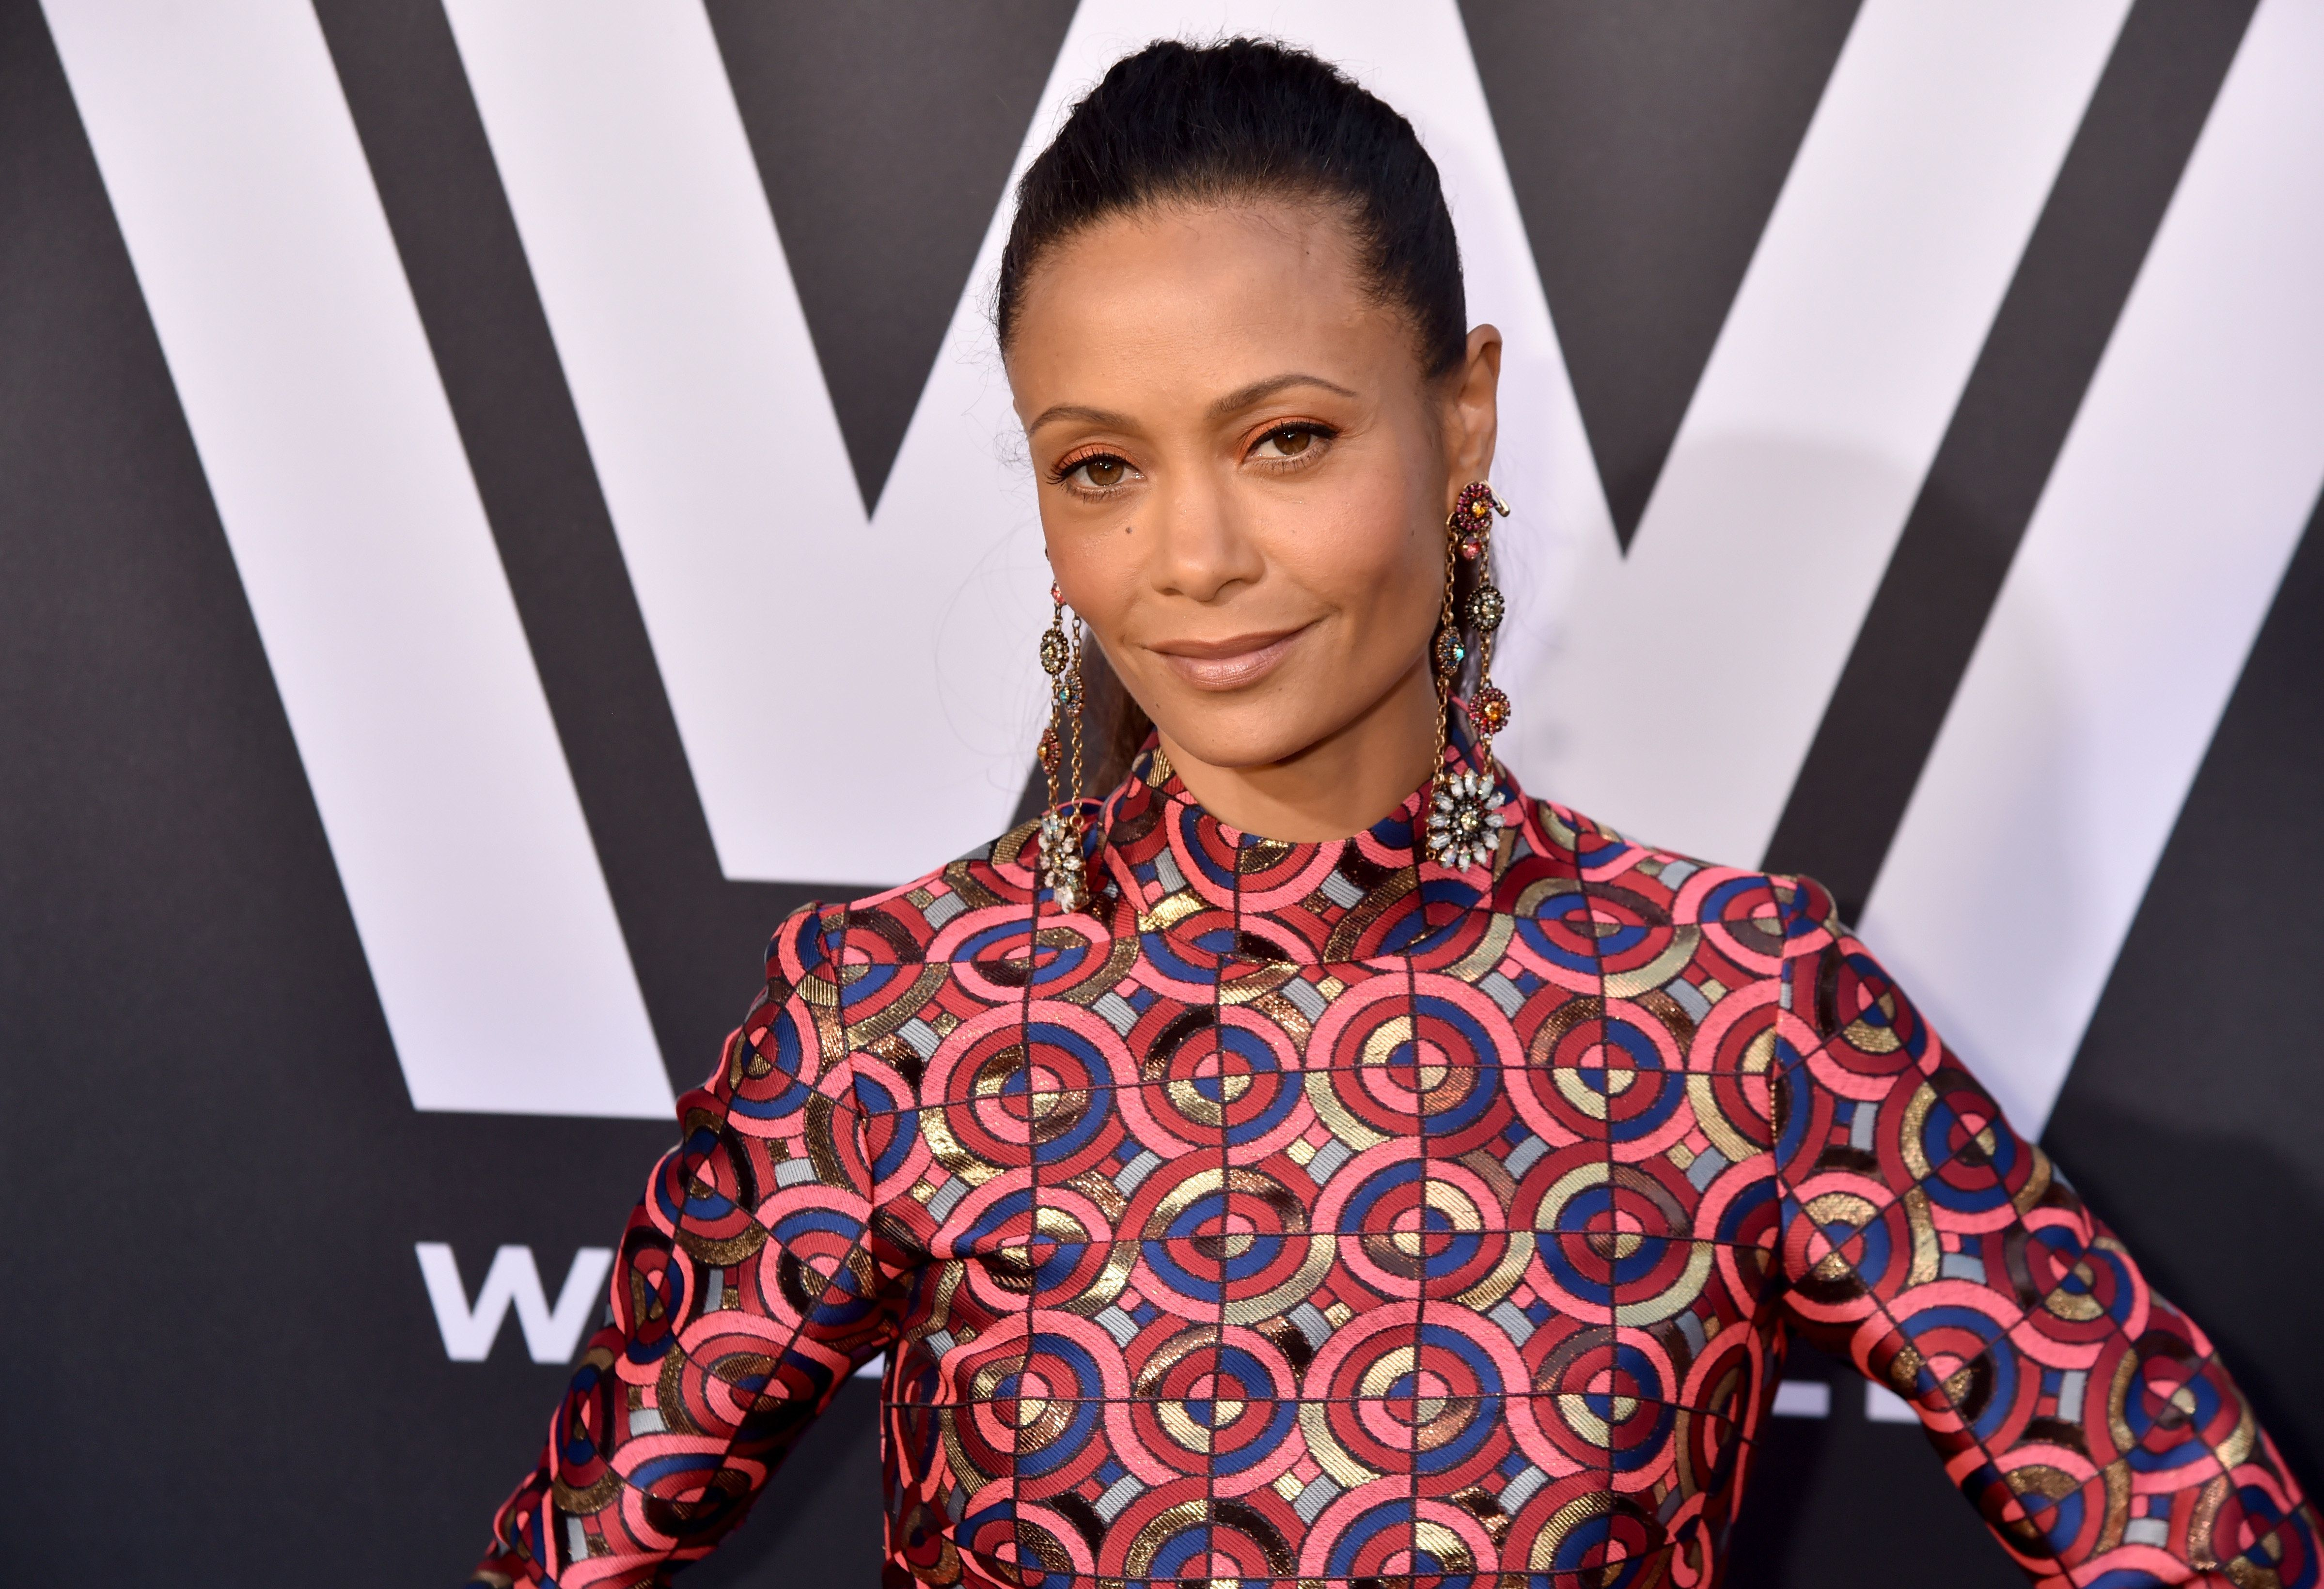 Thandie Newton Celebrates Landmark 'Star Wars' Role In 'Solo'